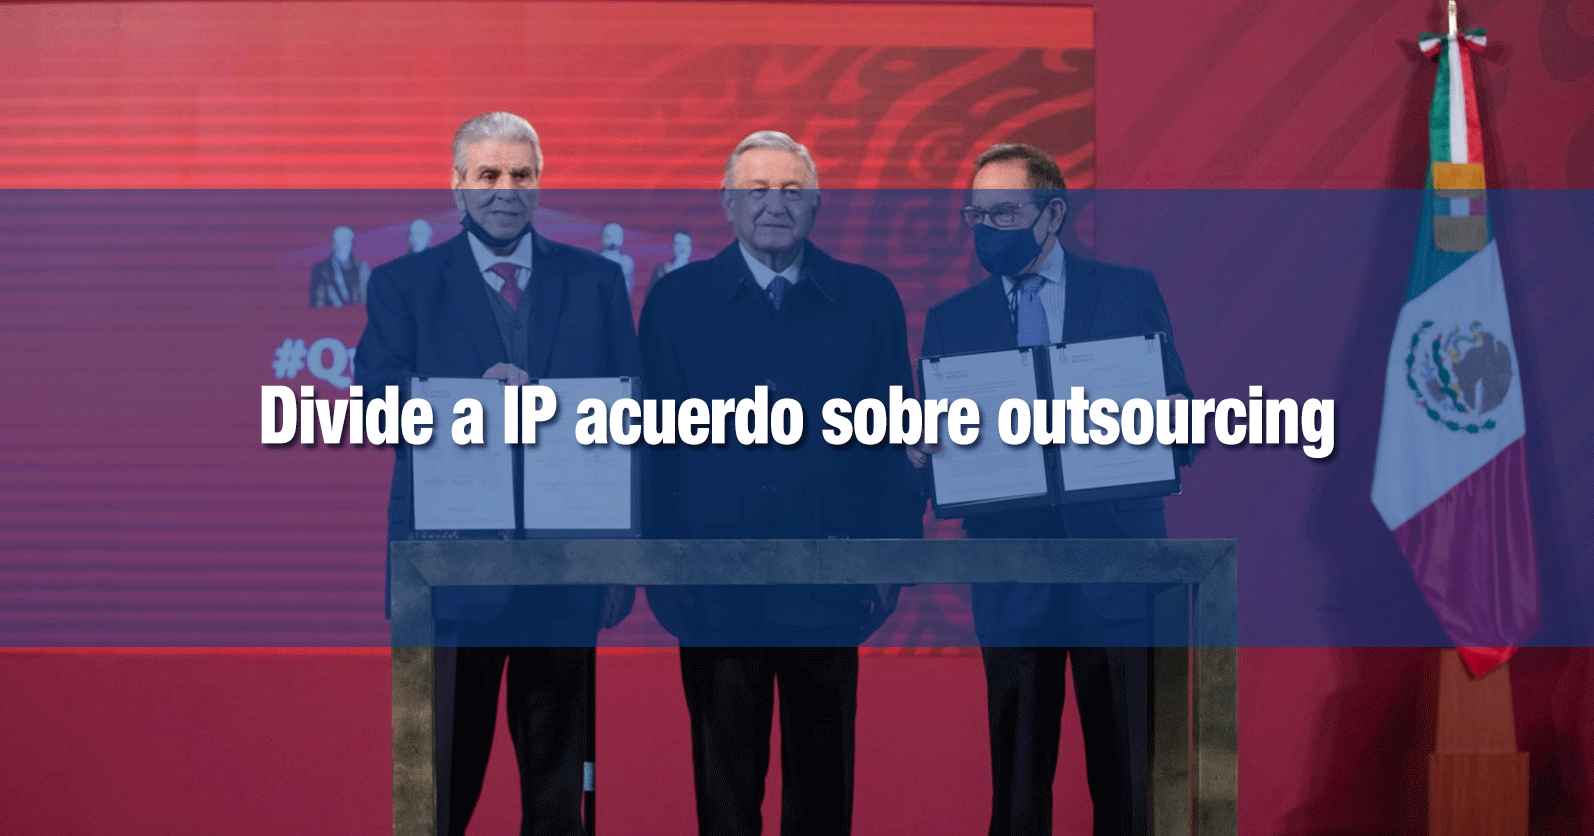 Divide a IP acuerdo sobre outsourcing